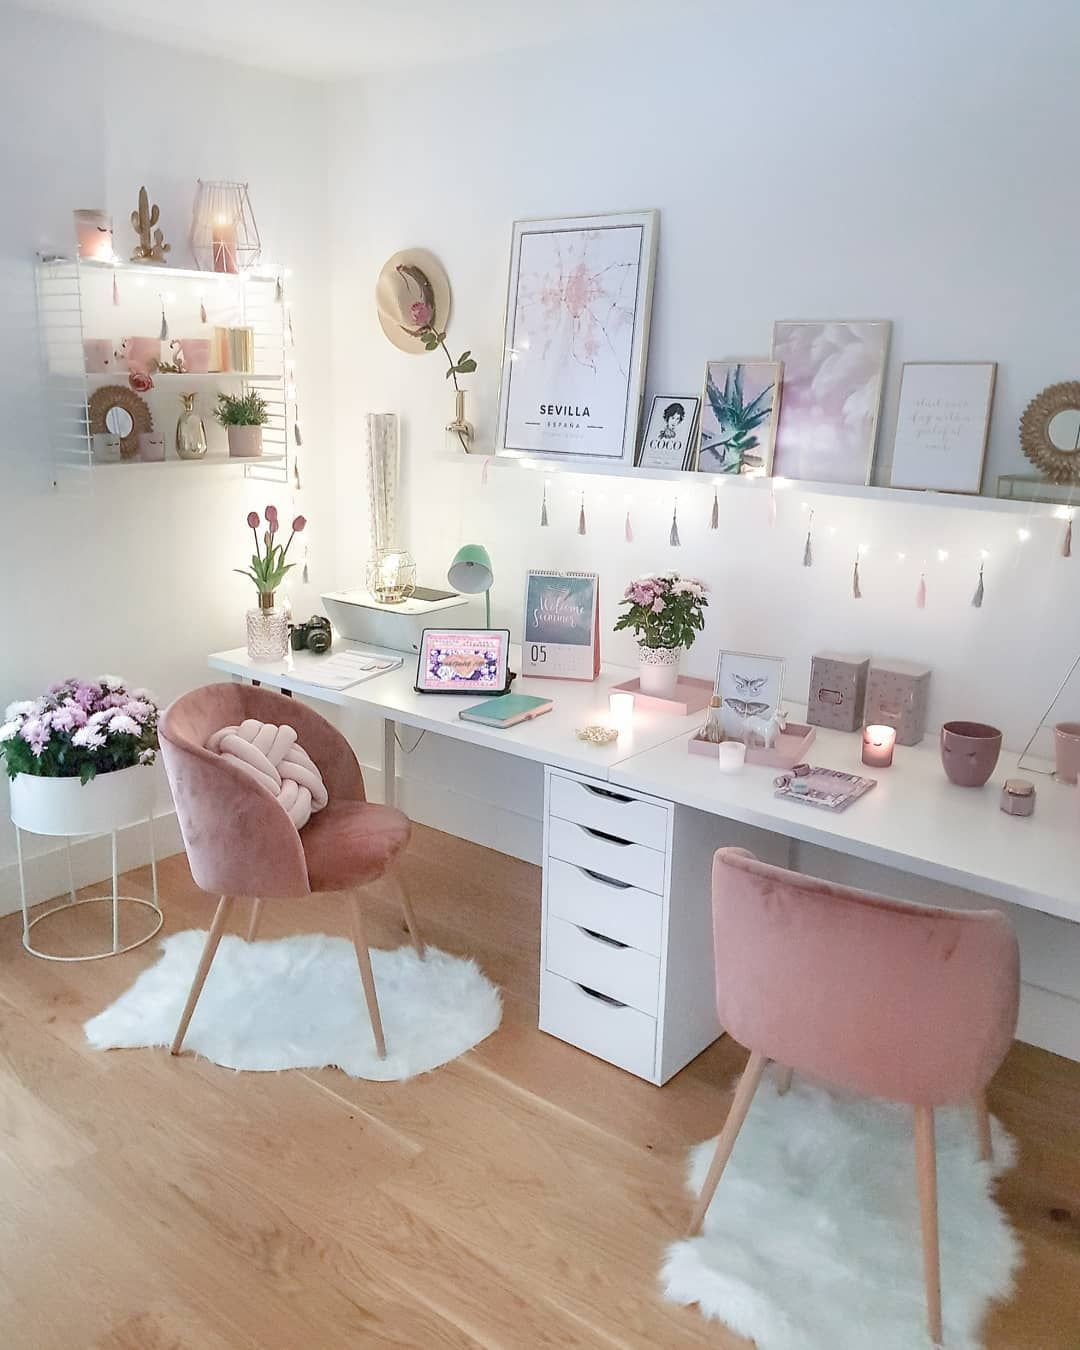 Love The Double Desks And Pretty Home Decor In This Office Design